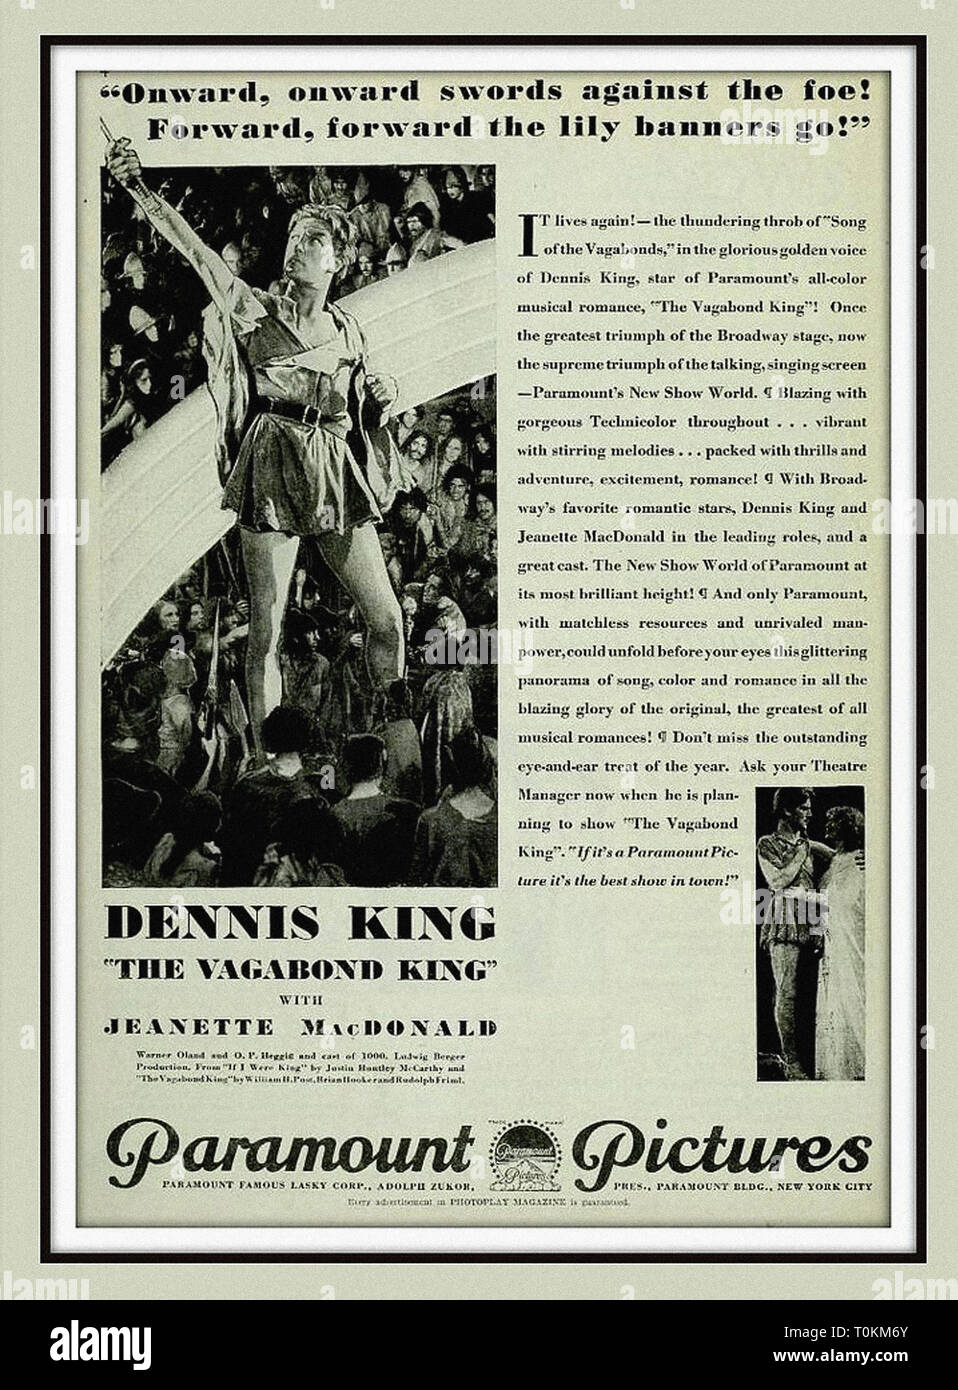 Dennis King and Jeanette MacDonald in The Vagabond King - Photoplay Feb 1930 - Vintage pre-code silent movie poster - Stock Image